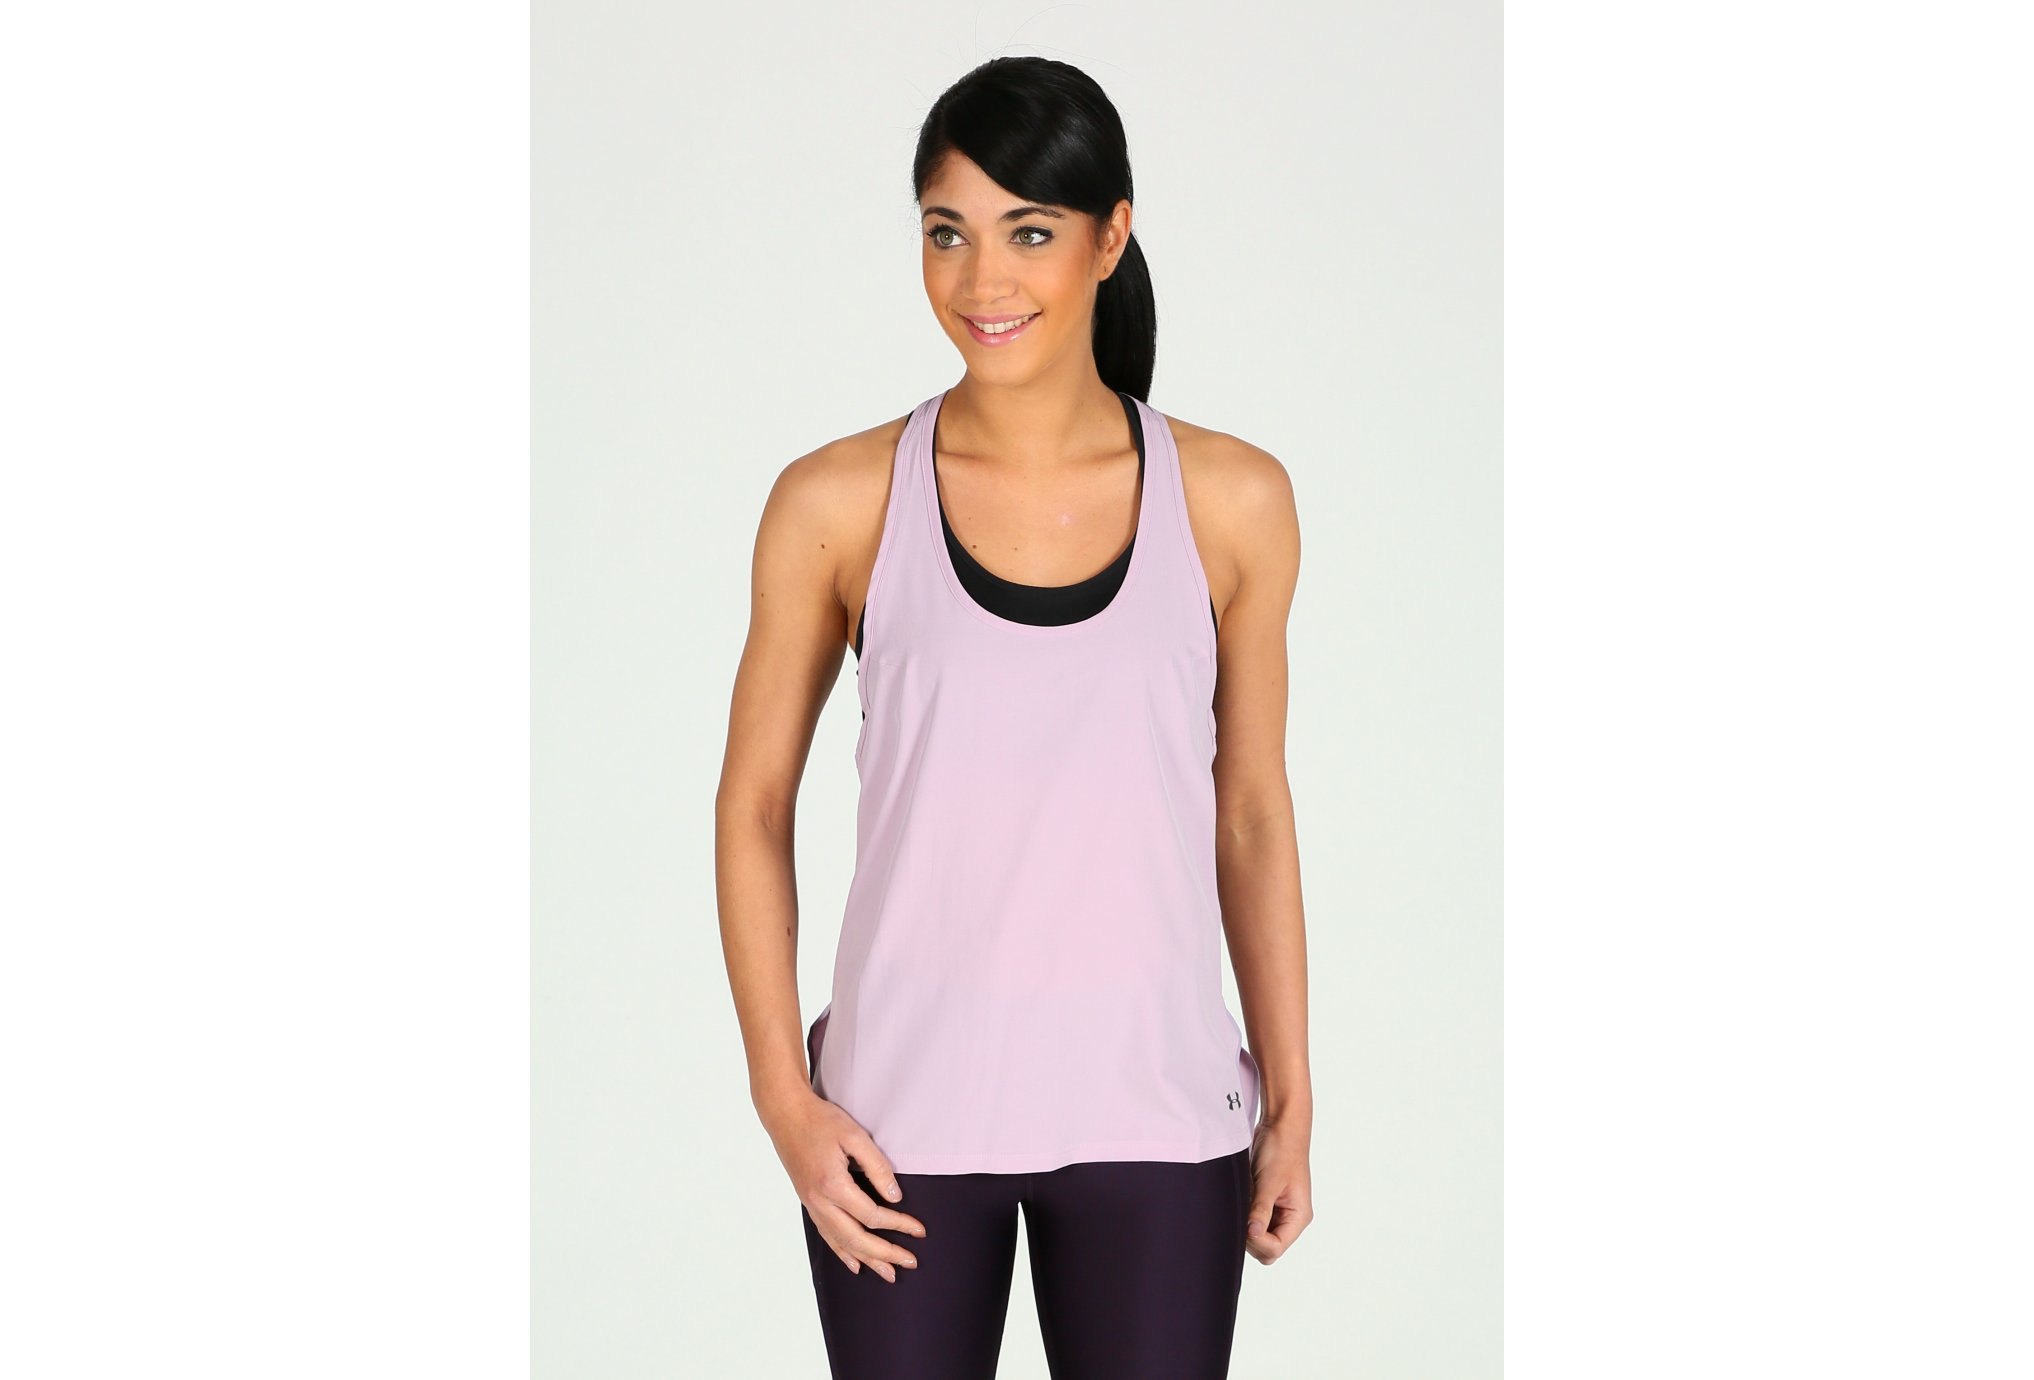 Under Armour Accelerate W Diététique Vêtements femme